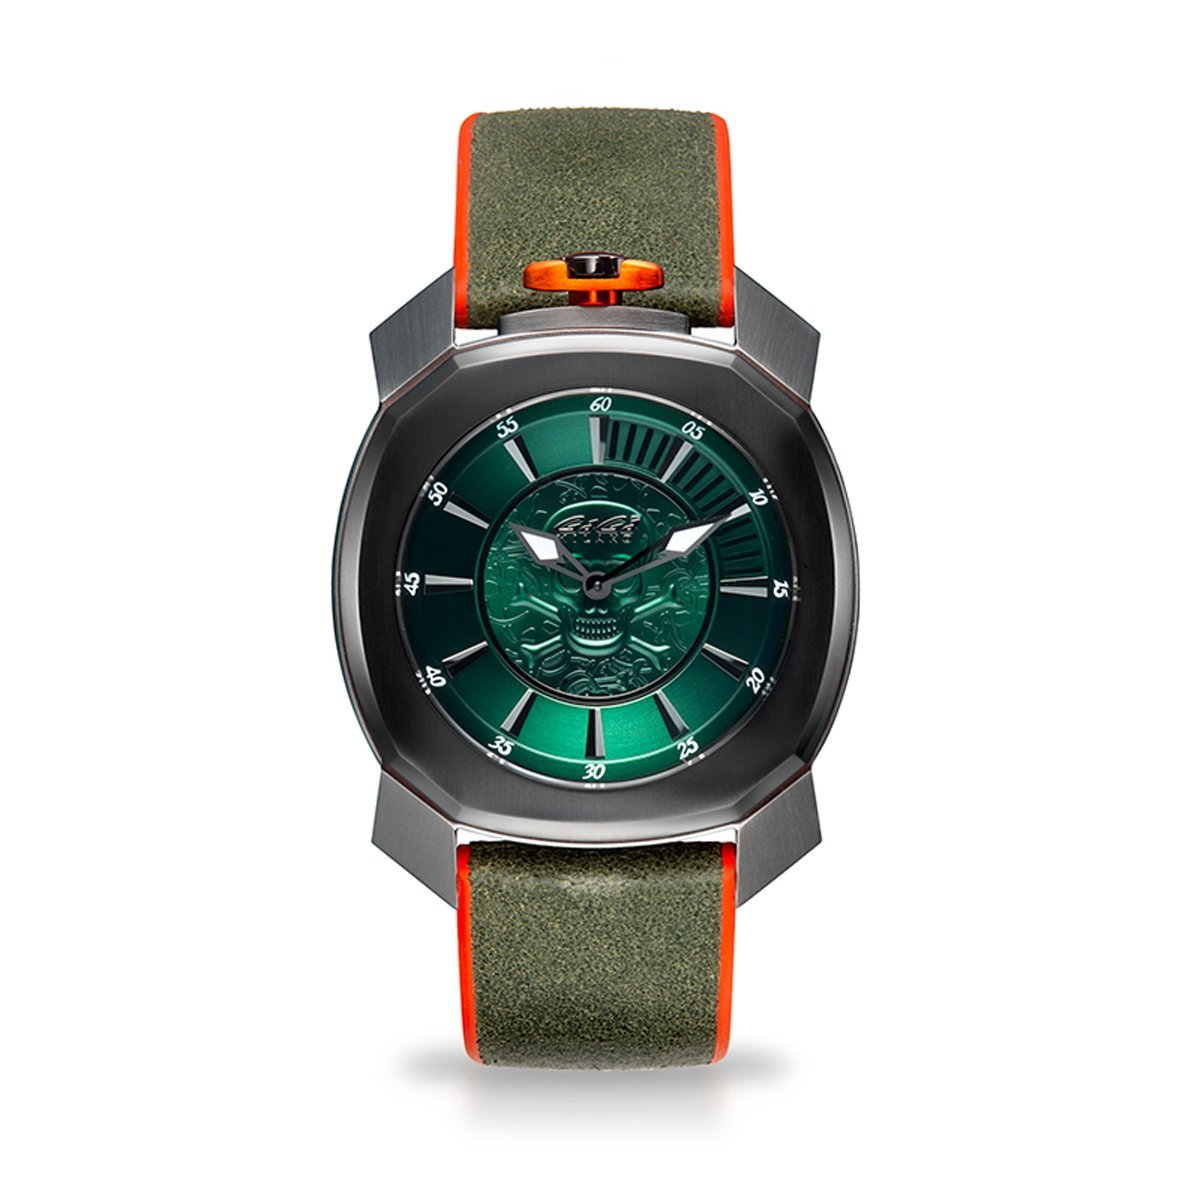 Gaga Milano Frame_One Skull Green - Watches & Crystals